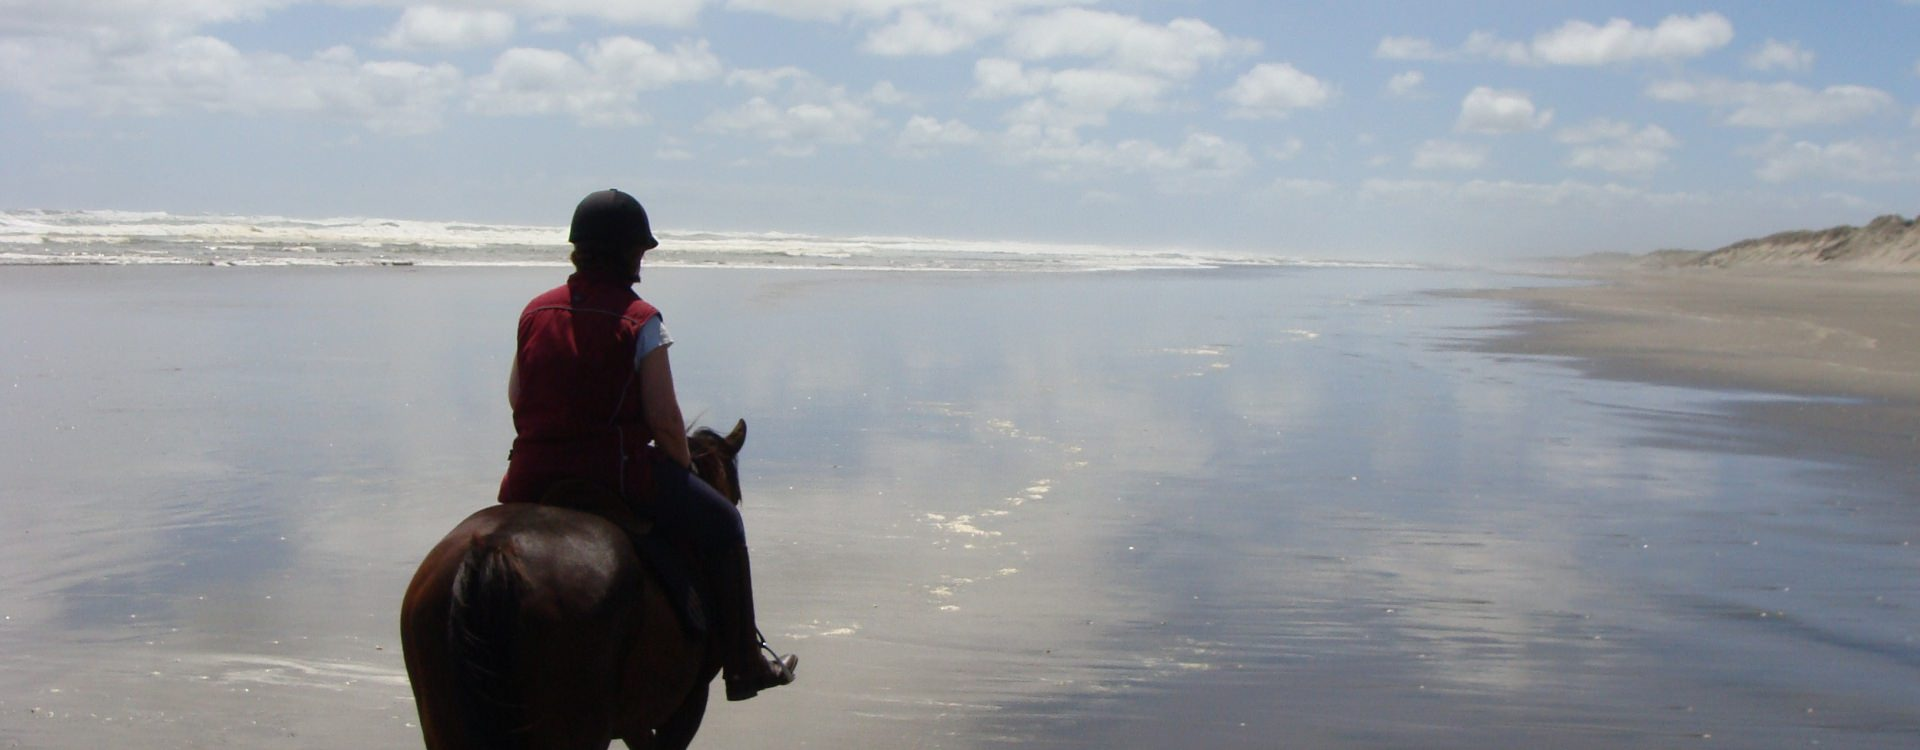 Beach riding in New Zealand